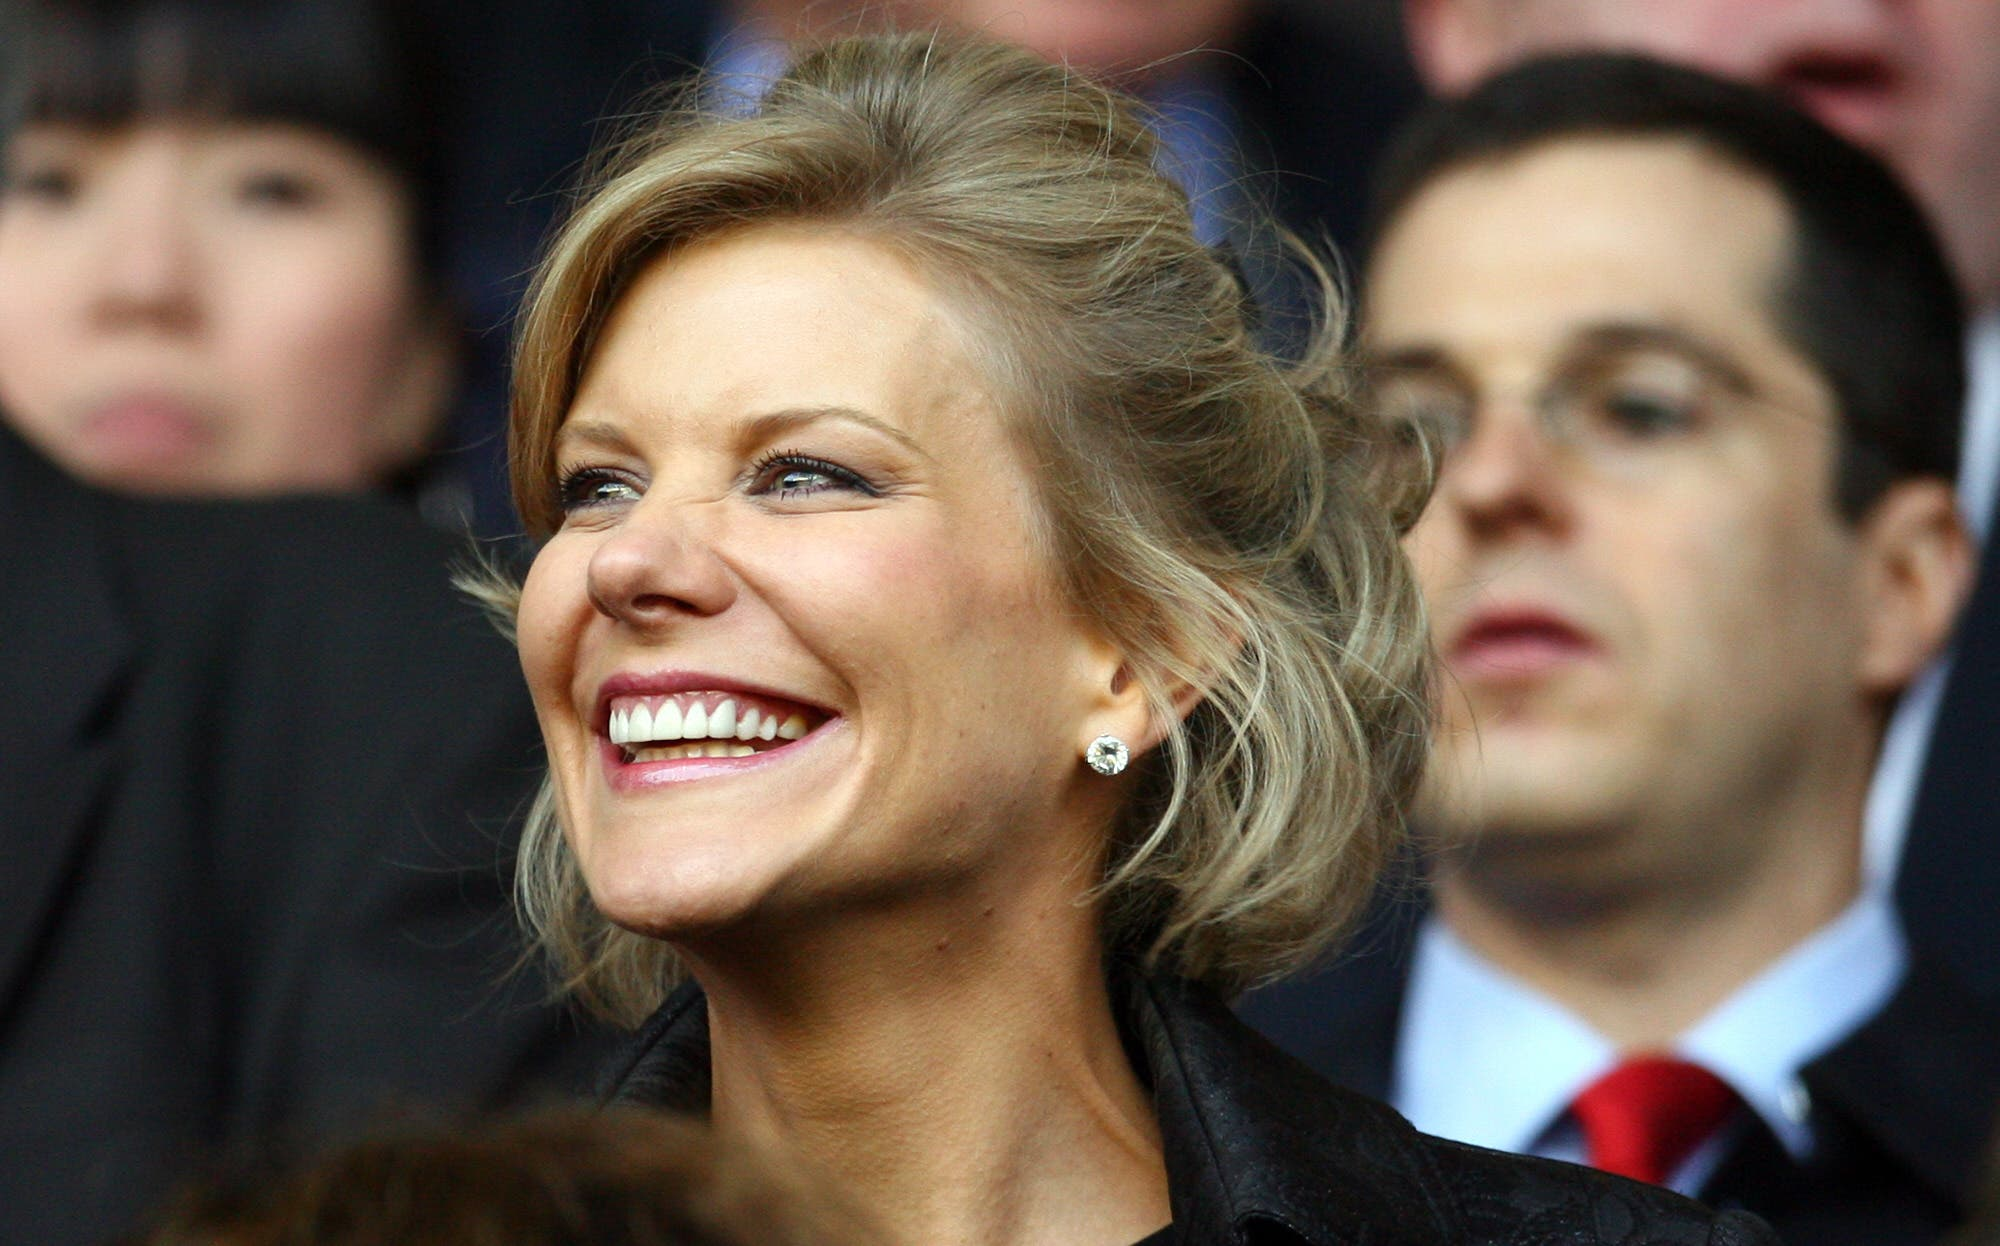 DIC negotiator Amanda Staveley takes her seat before Liverpool took on Chelsea in their UEFA Champions League semi-final football match against Liverpool at Anfield in Liverpool, north west England, April 22, 2008. (AFP)